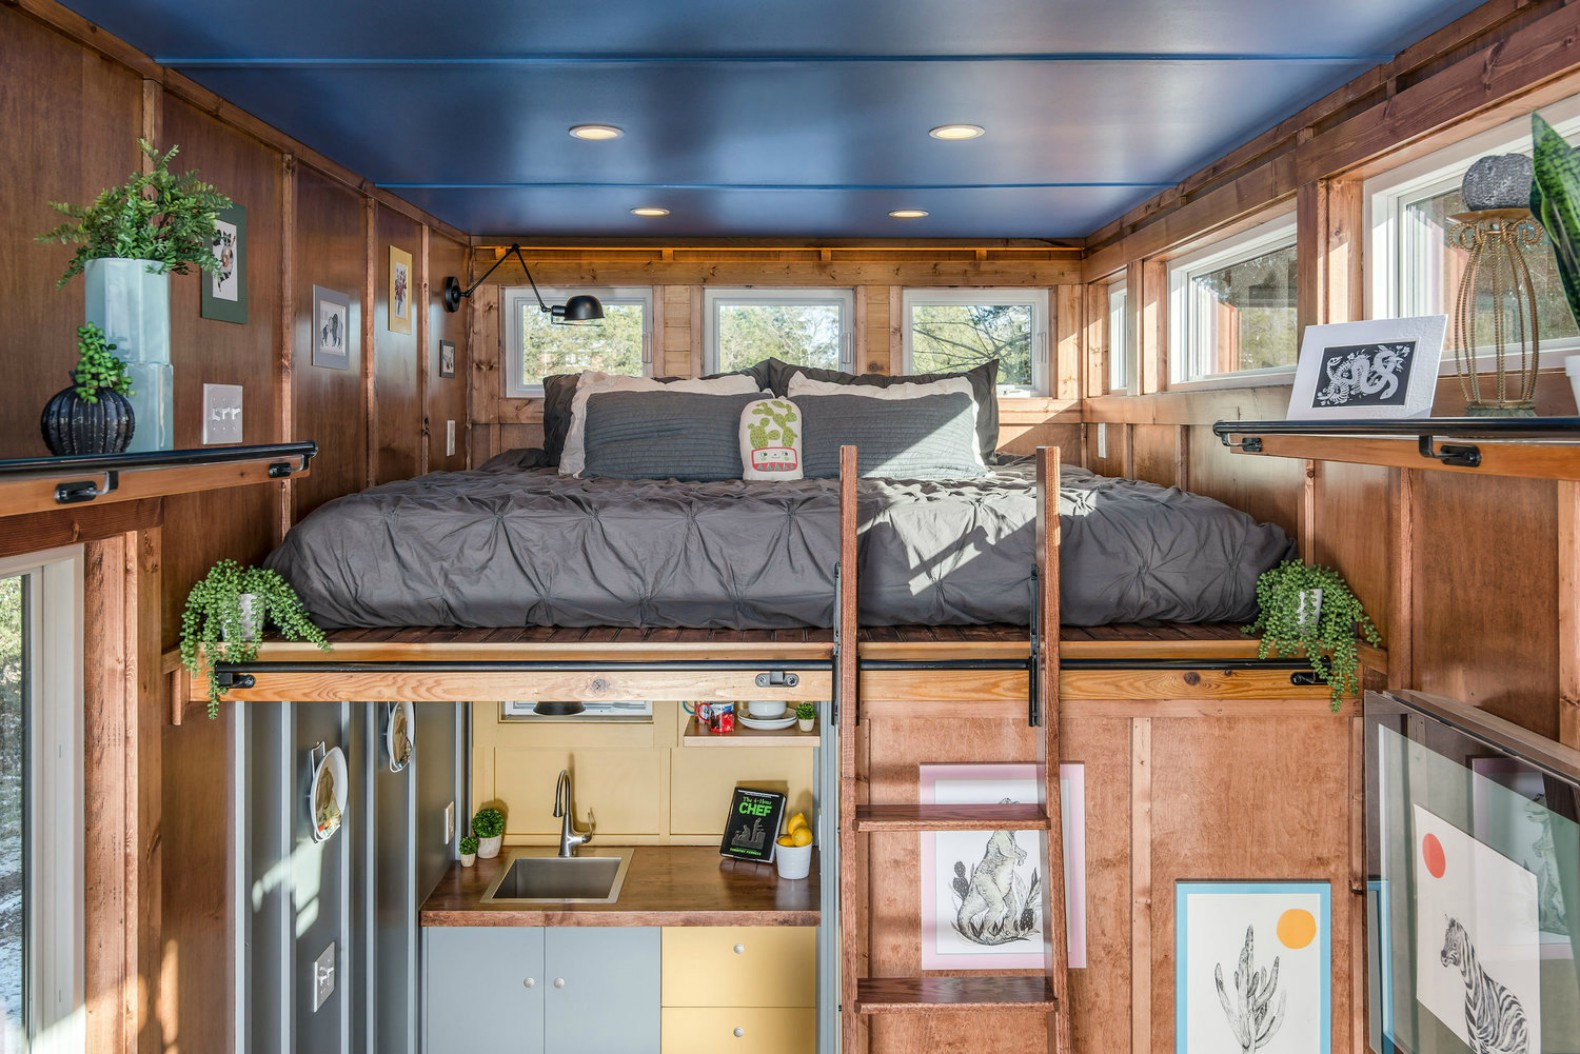 new frontier 39 s cornelia tiny home is a writer 39 s studio made with reclaimed wood inhabitat. Black Bedroom Furniture Sets. Home Design Ideas